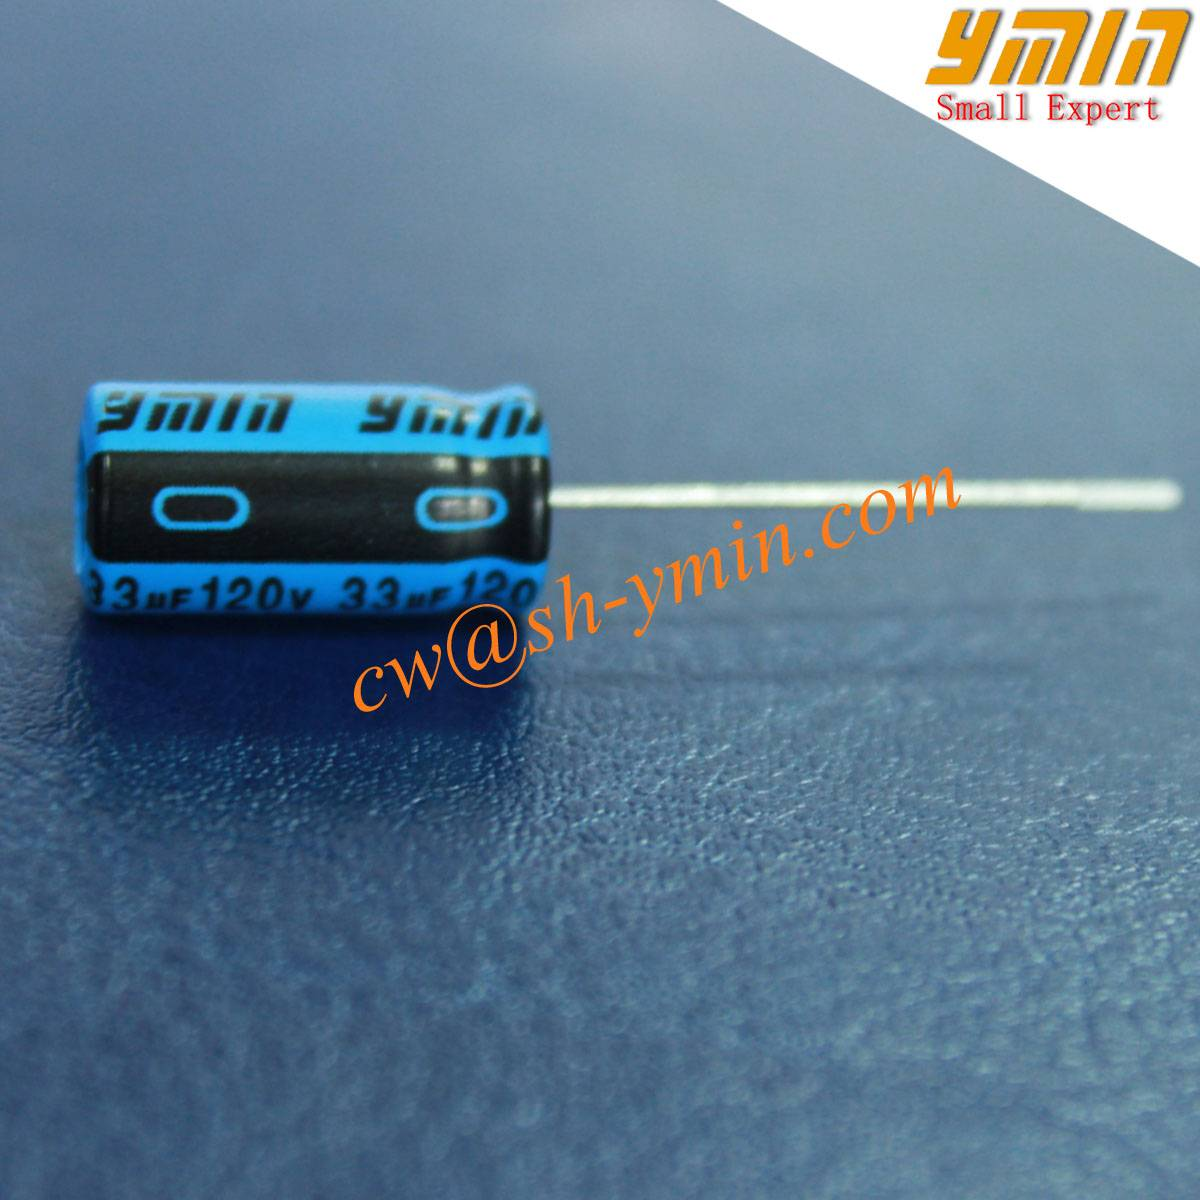 130C 120V 33uF Capacitor Radial Electrolytic Capacitor for Solar LED Lighting and General Purpose